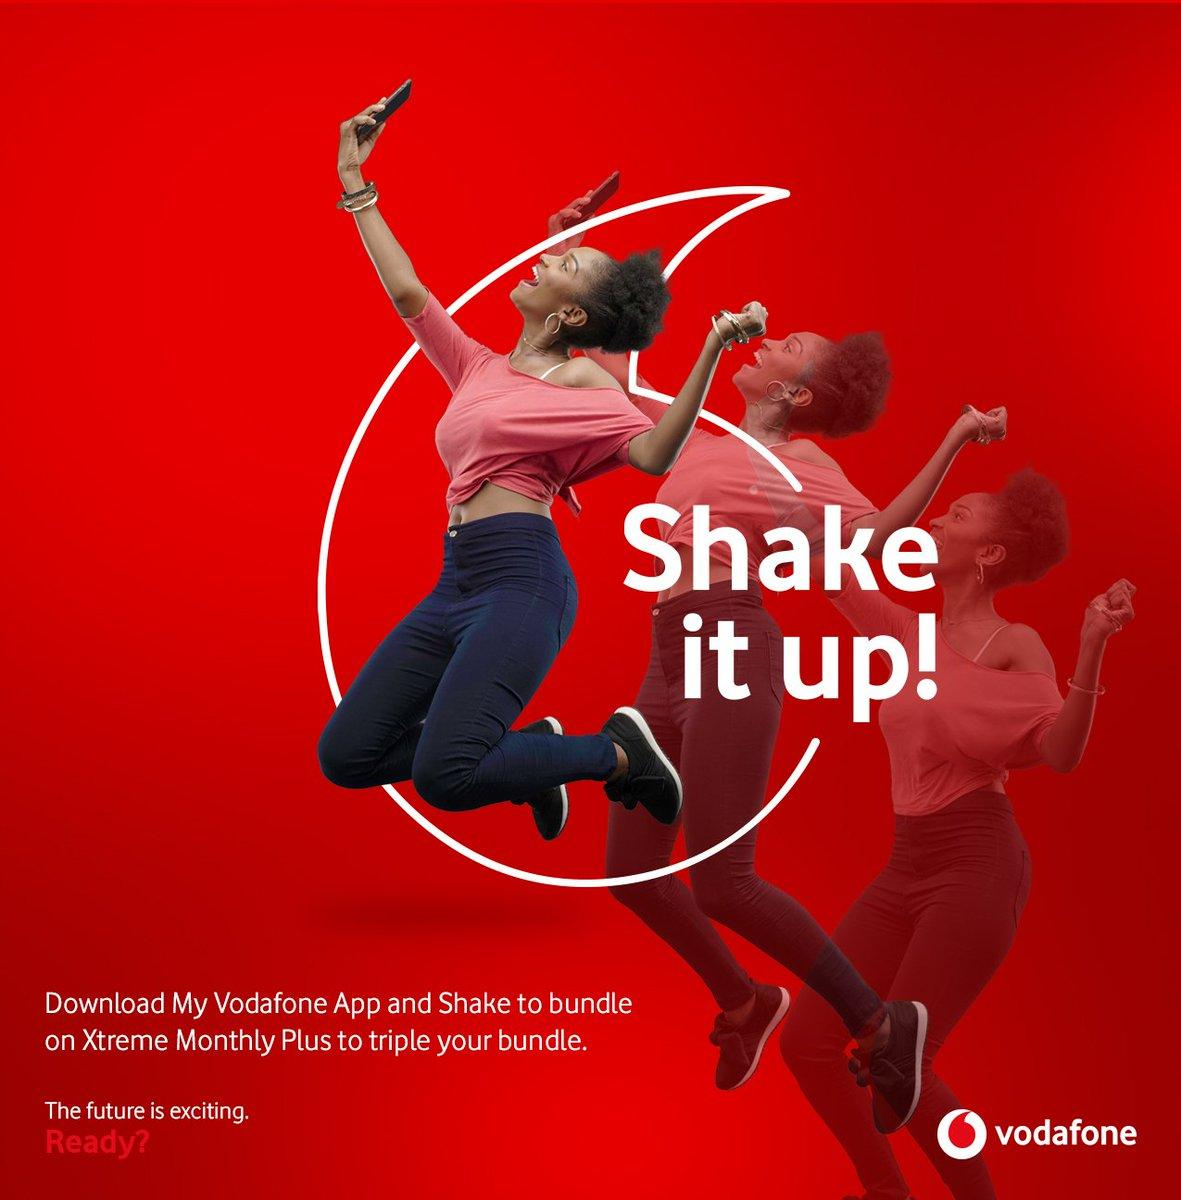 Vodafone X is 3 years! #ShakeForXtra on your phone to get free rewards